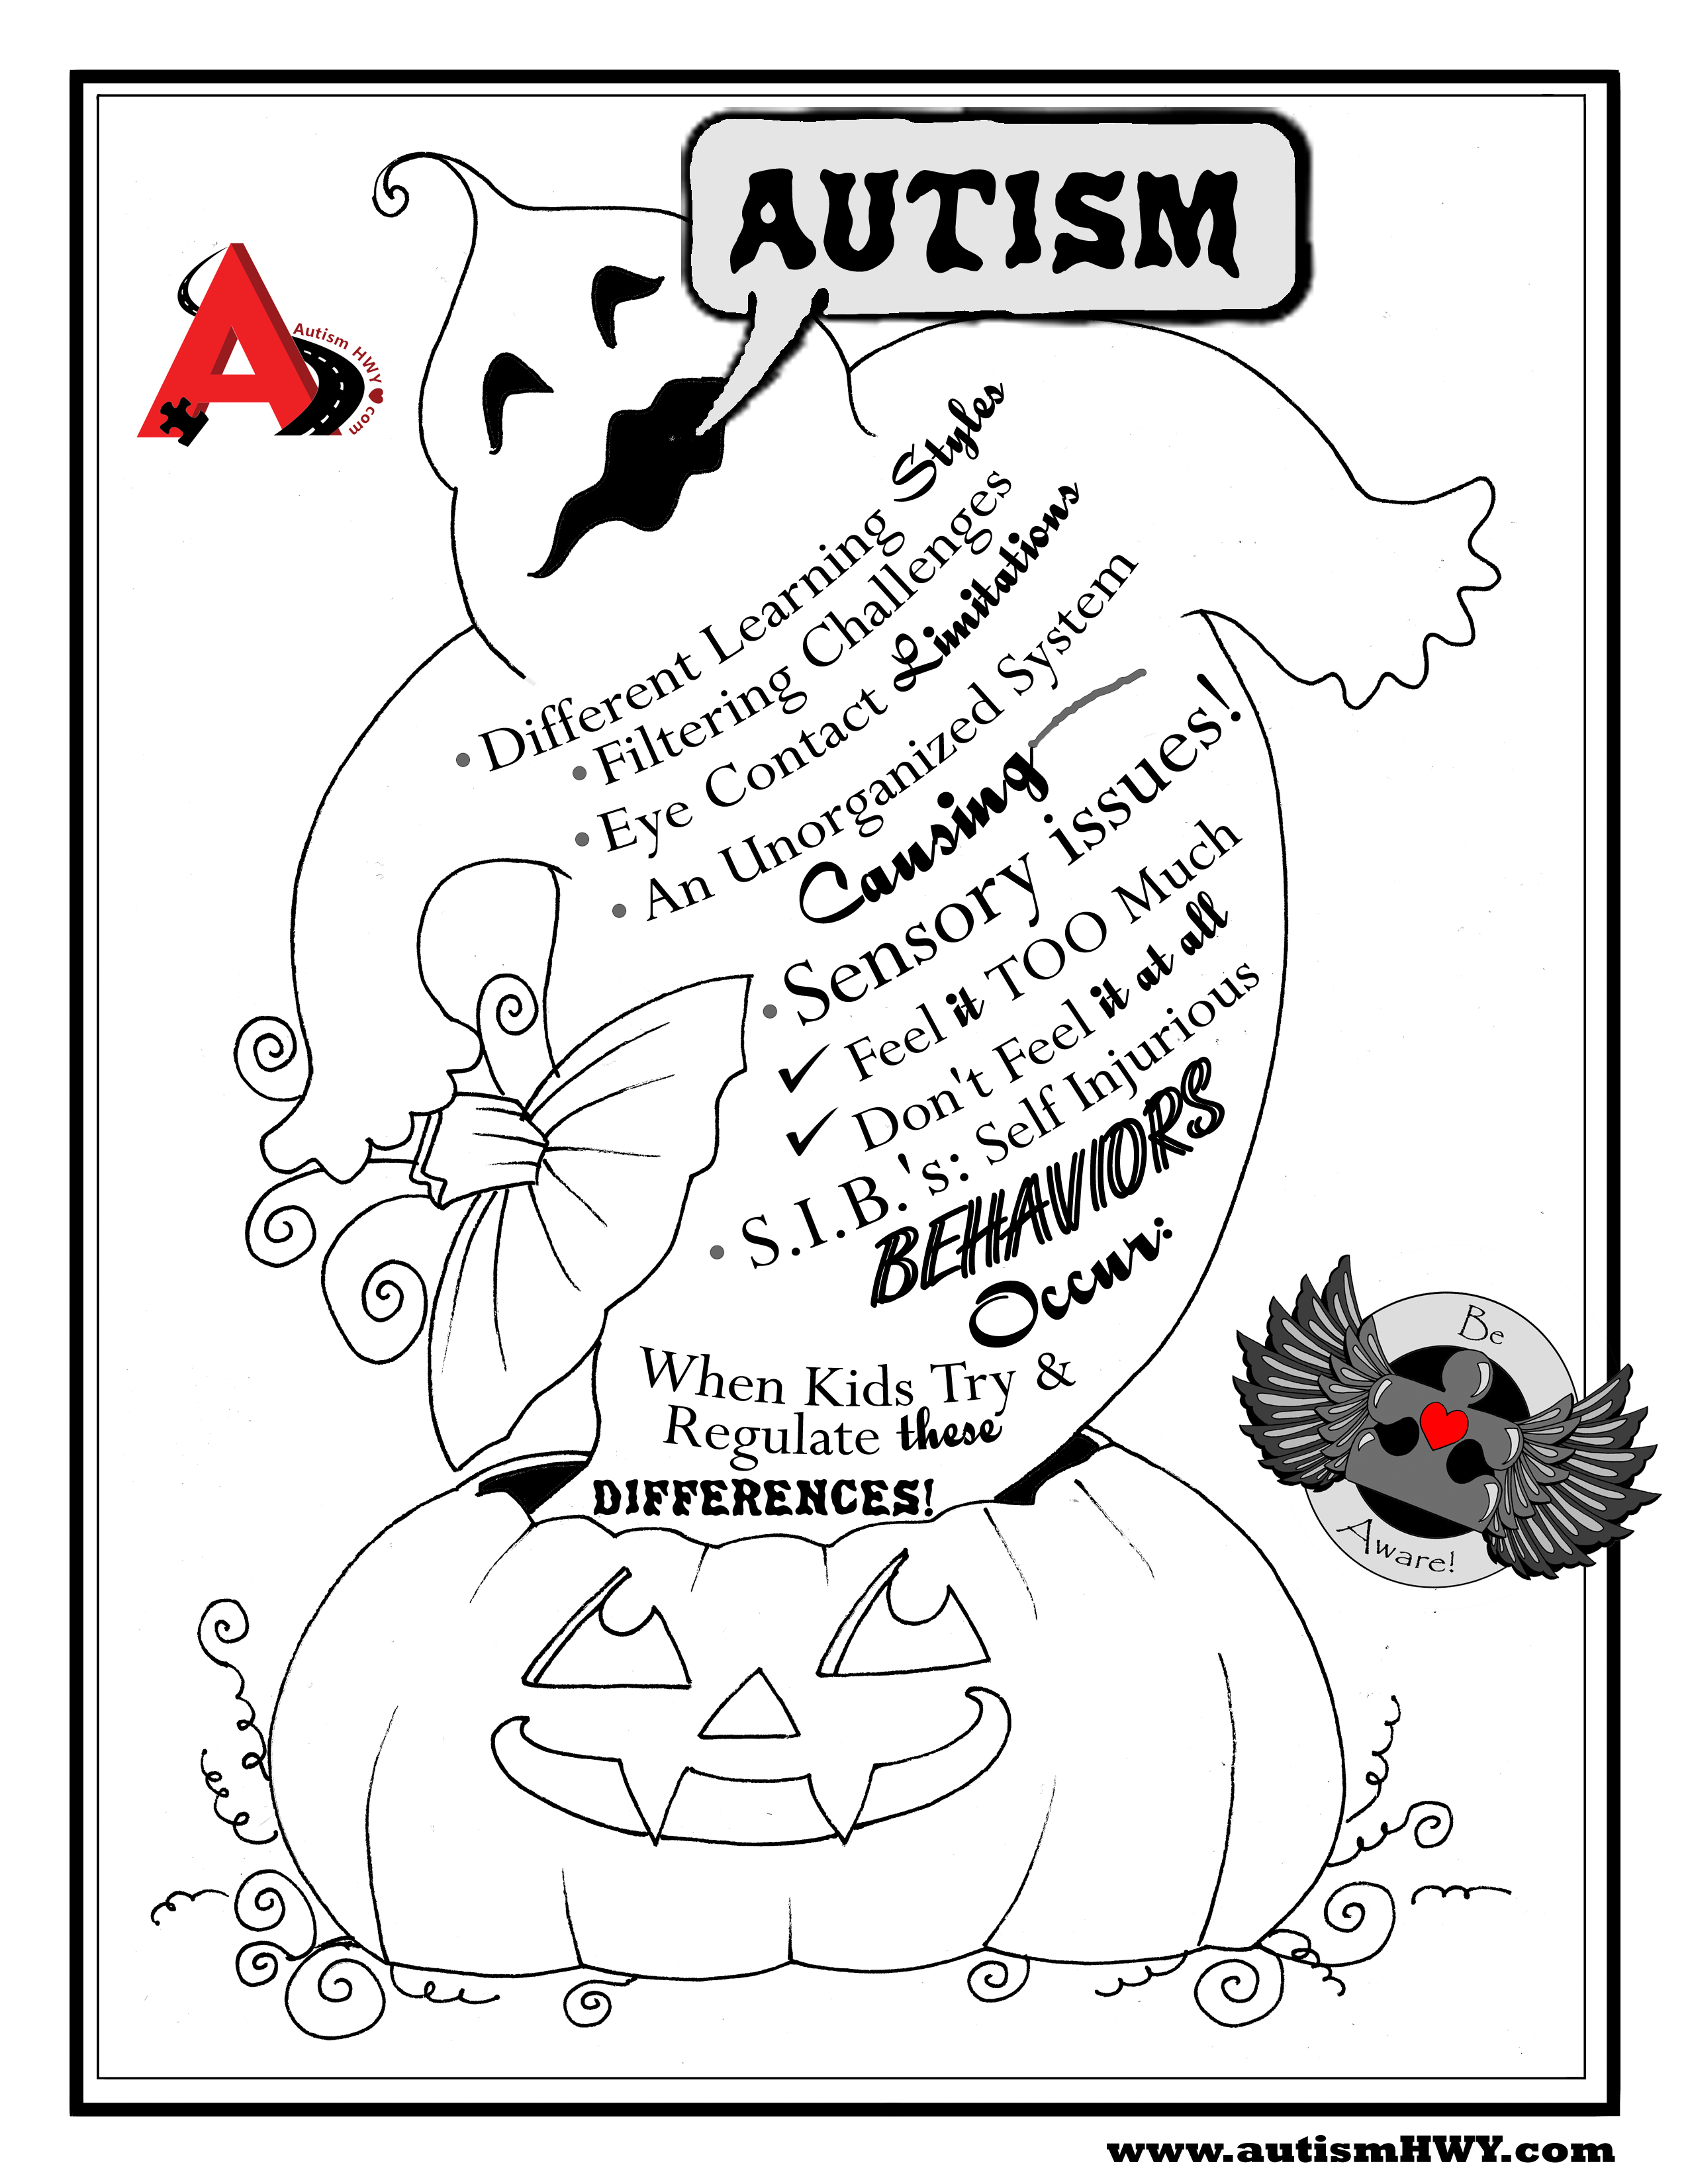 Free coloring pages awareness ribbon - Everyday Every Holiday Autismhwy Com Will Find Ways To Put The Information On The Table Promoting Friendship Through Common Understanding At Every